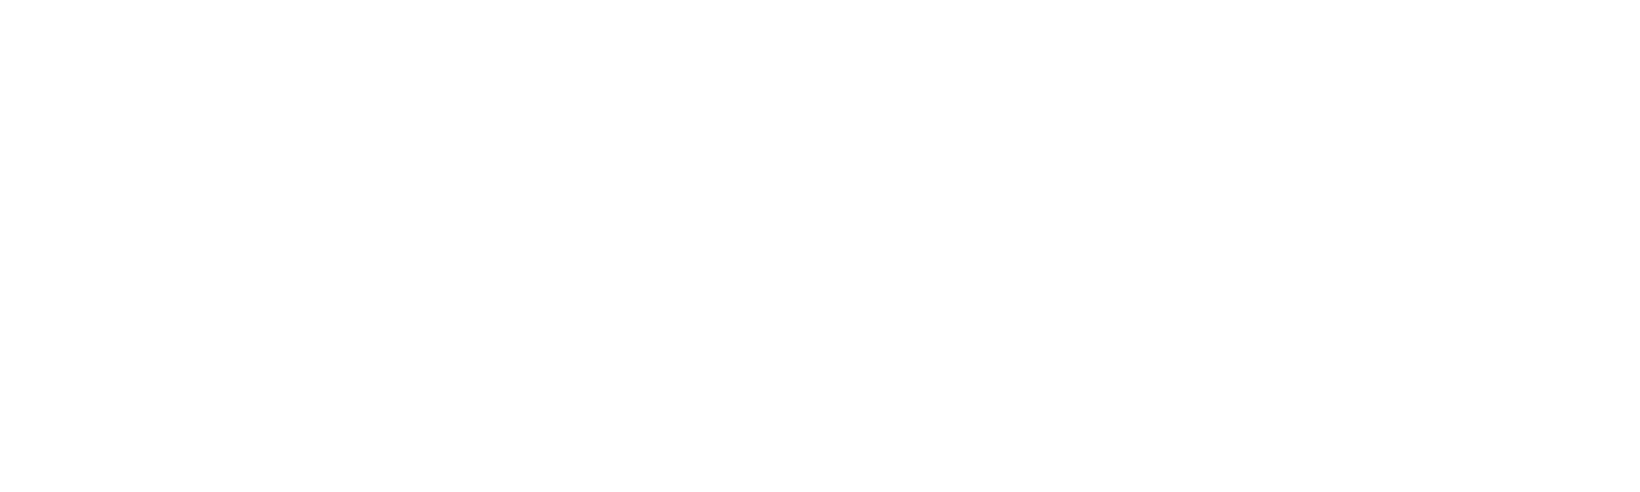 Bownds Realtors - Let us show you... Texas